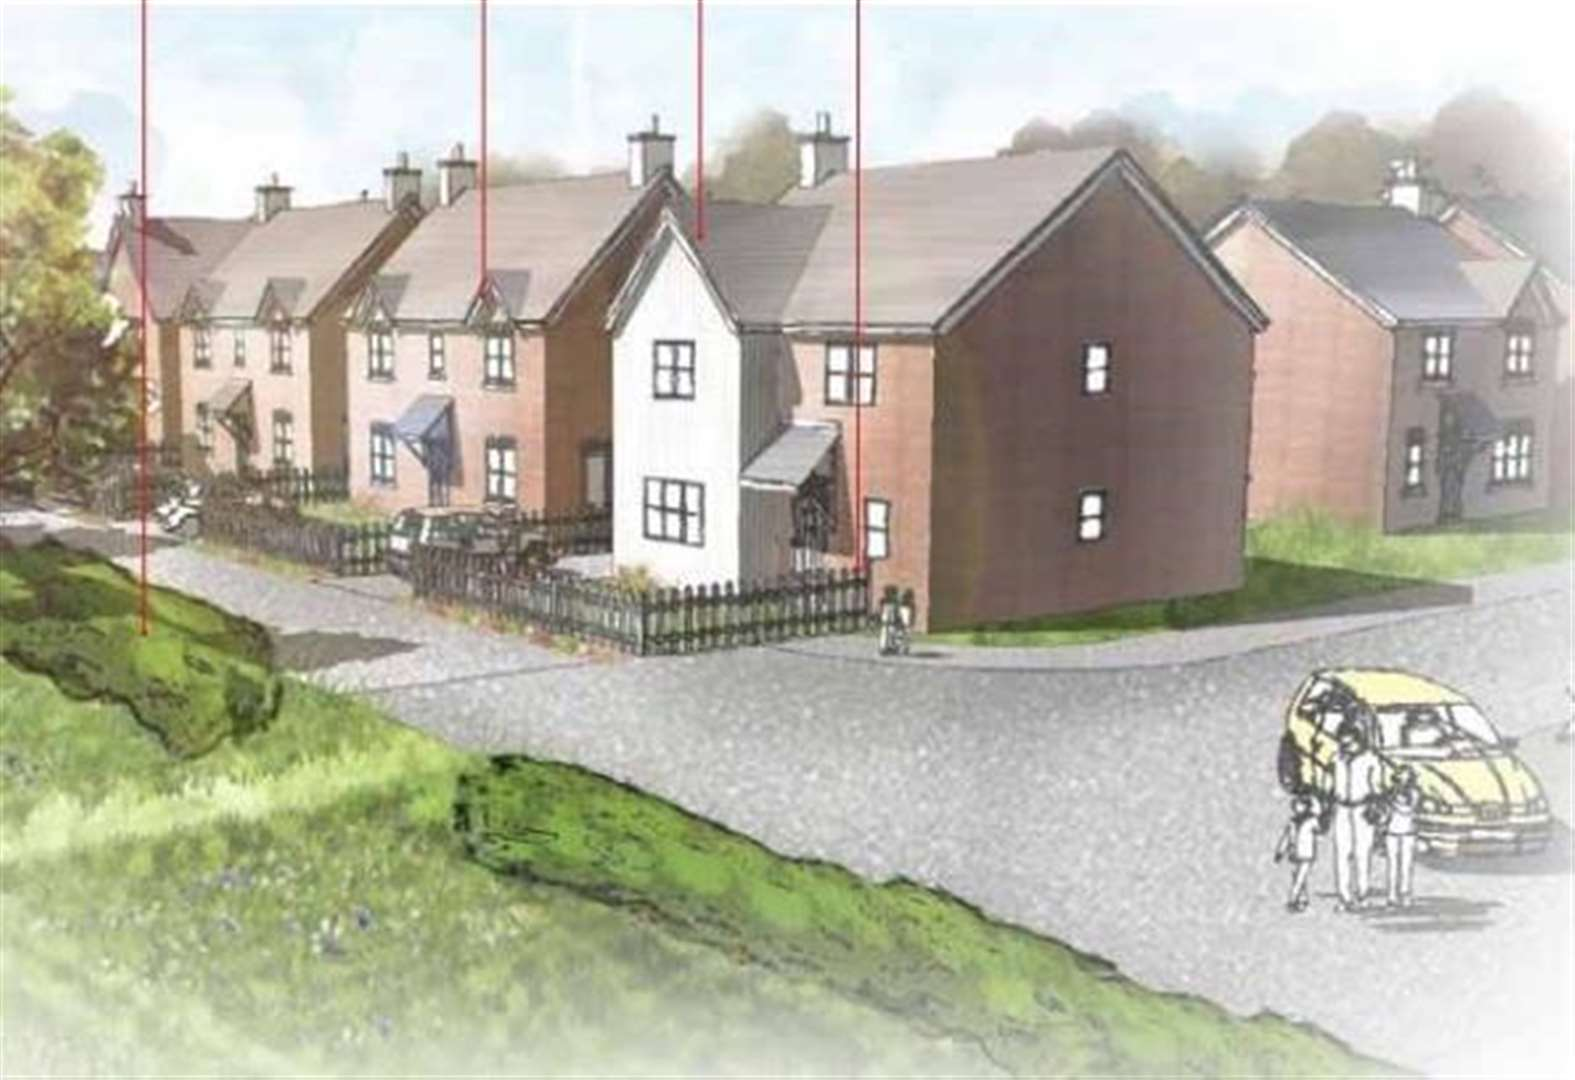 Campaigners hail success as developer sent packing over village plans